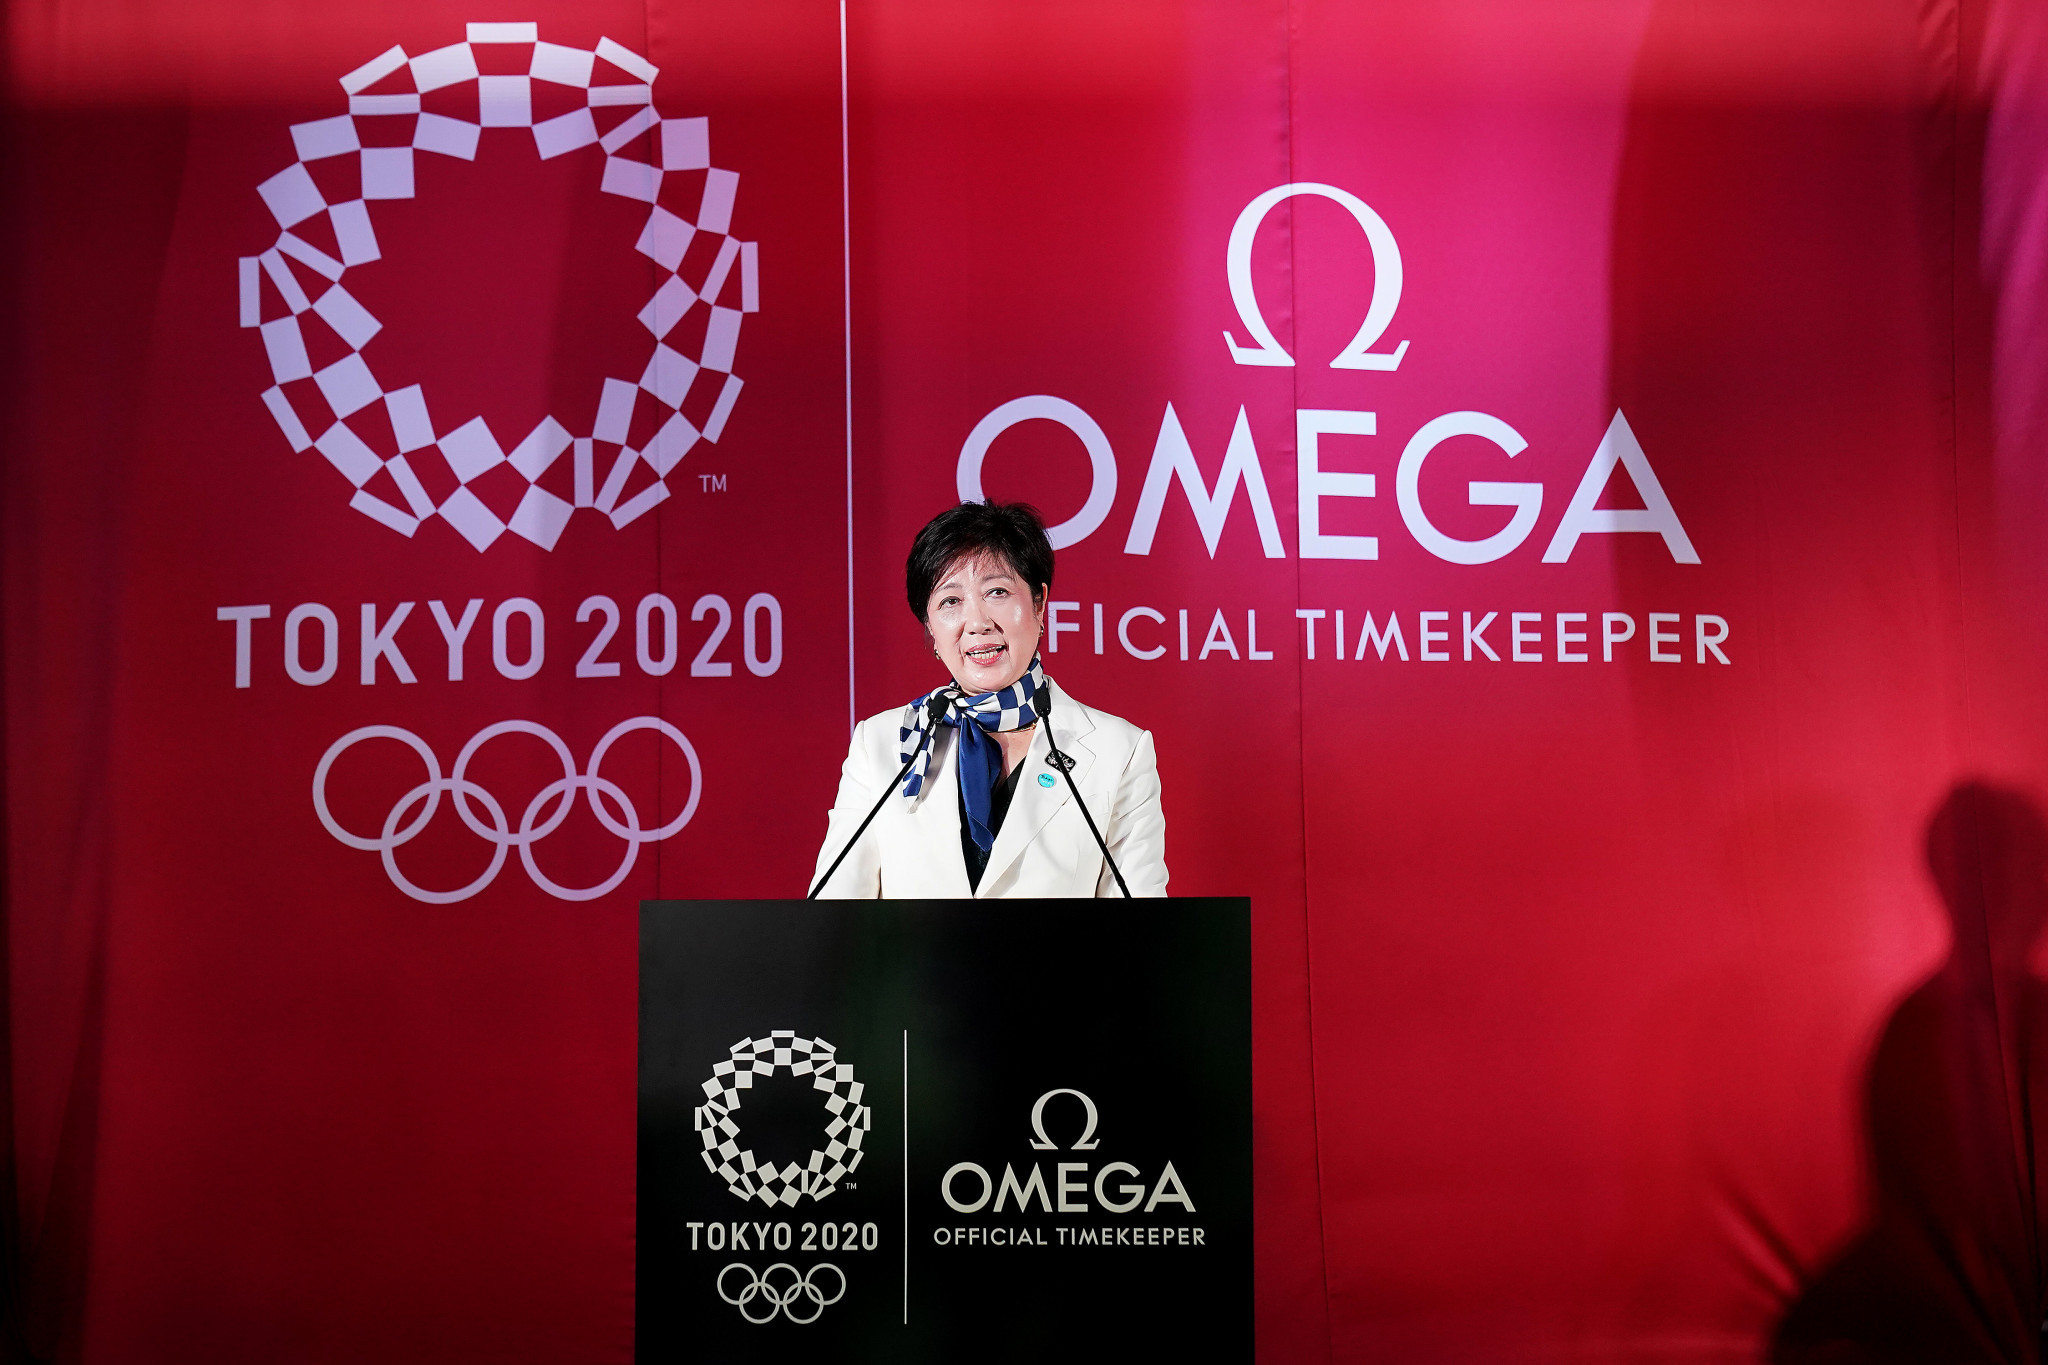 Tokyo Governor Yuriko Koike has credited Agenda 2020 for helping shape the principles and aims of CHANGE ©Getty Images